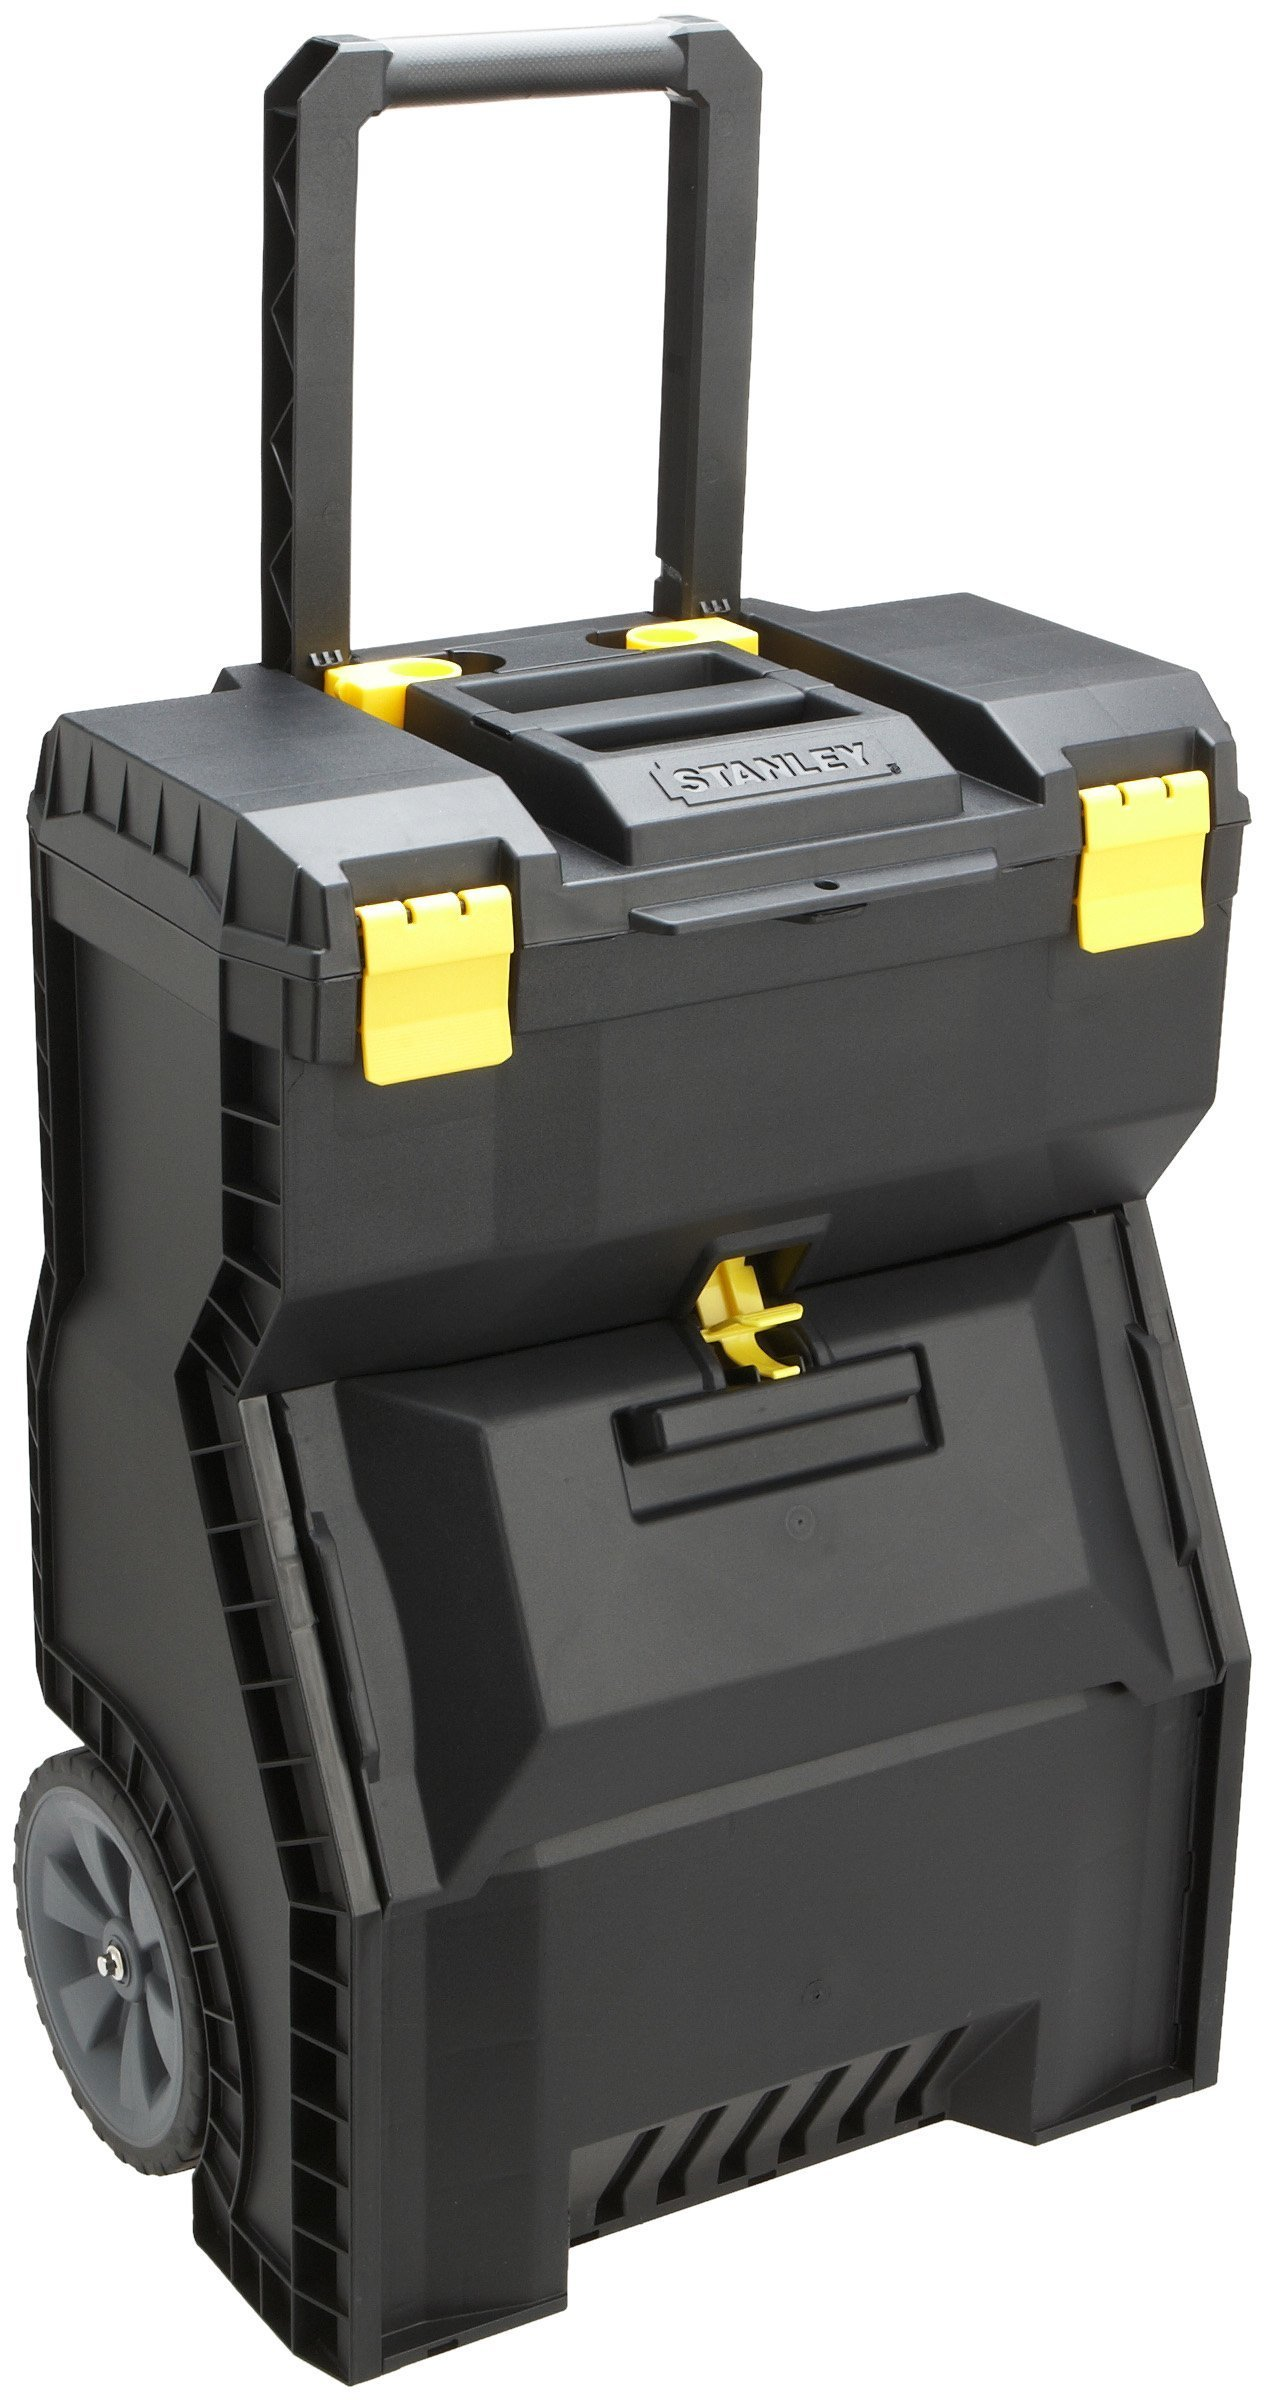 Stanley 018800R Mobile Work Center by Stanley (Image #1)